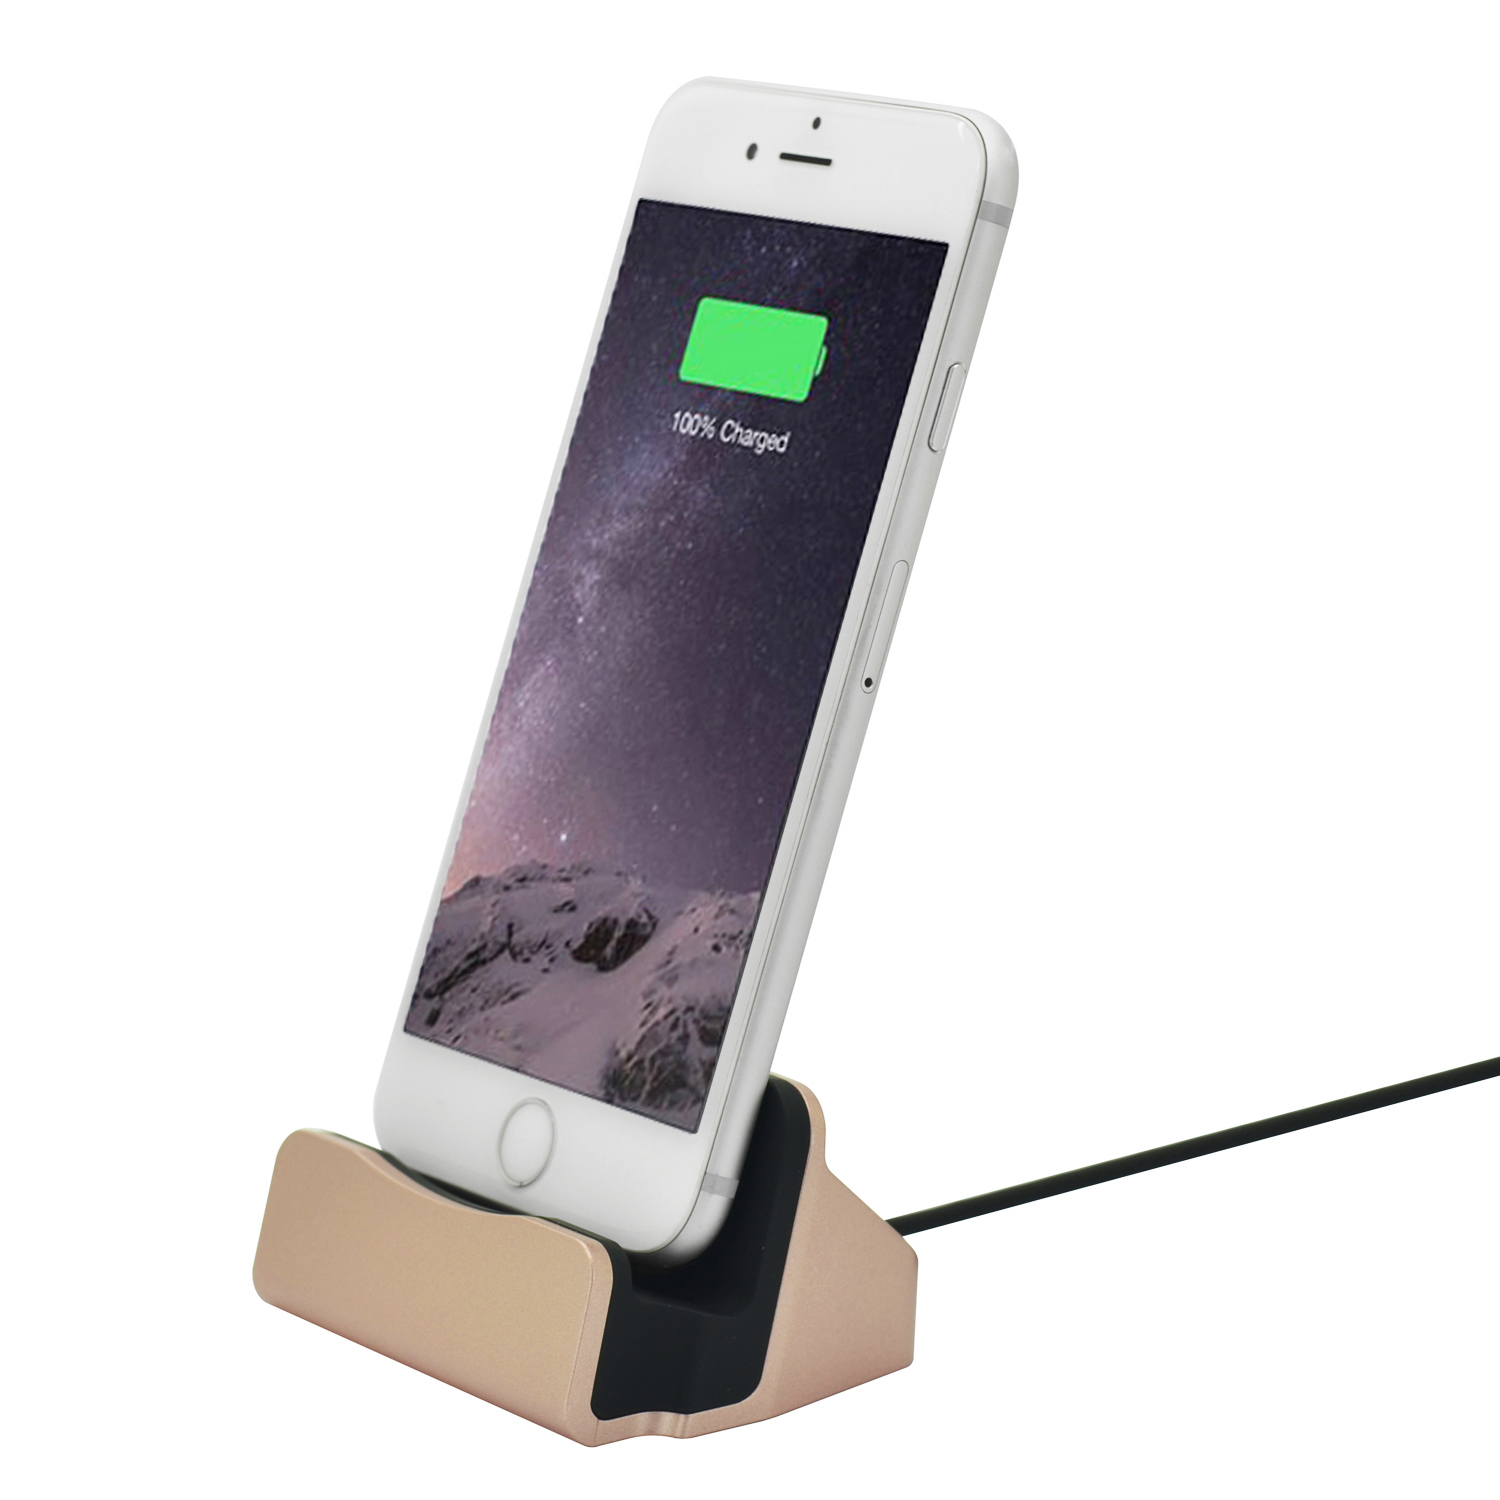 charging sync dock station holder stand docking charger for iphone 5 6 7 ts. Black Bedroom Furniture Sets. Home Design Ideas